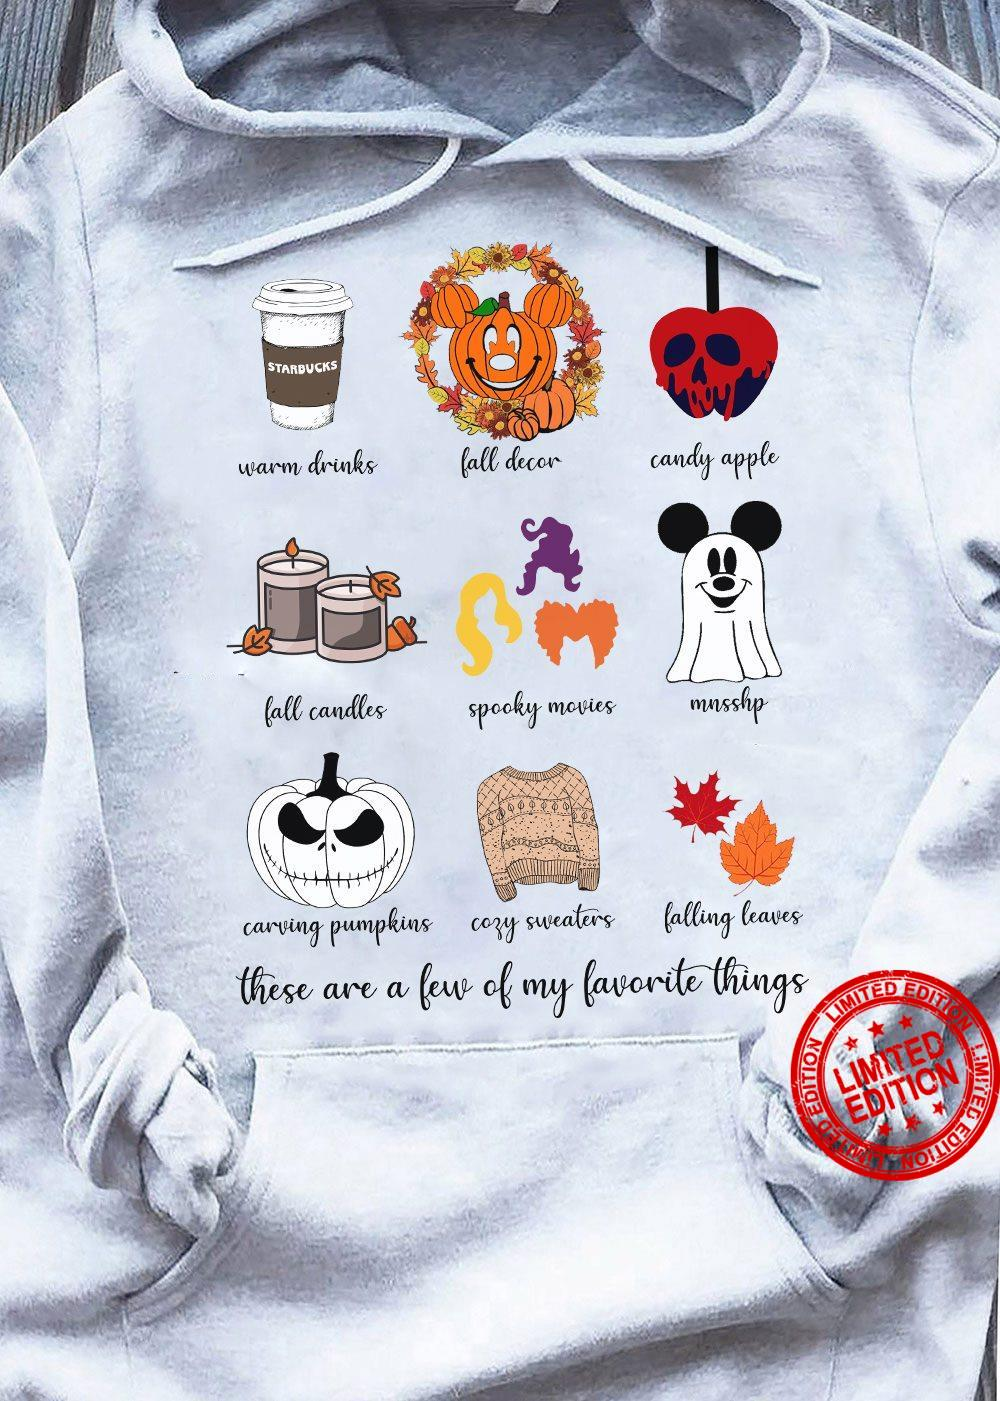 Warm Drinks Fall Decor Candy Apple Fall Candles Spooky Movies Shirt